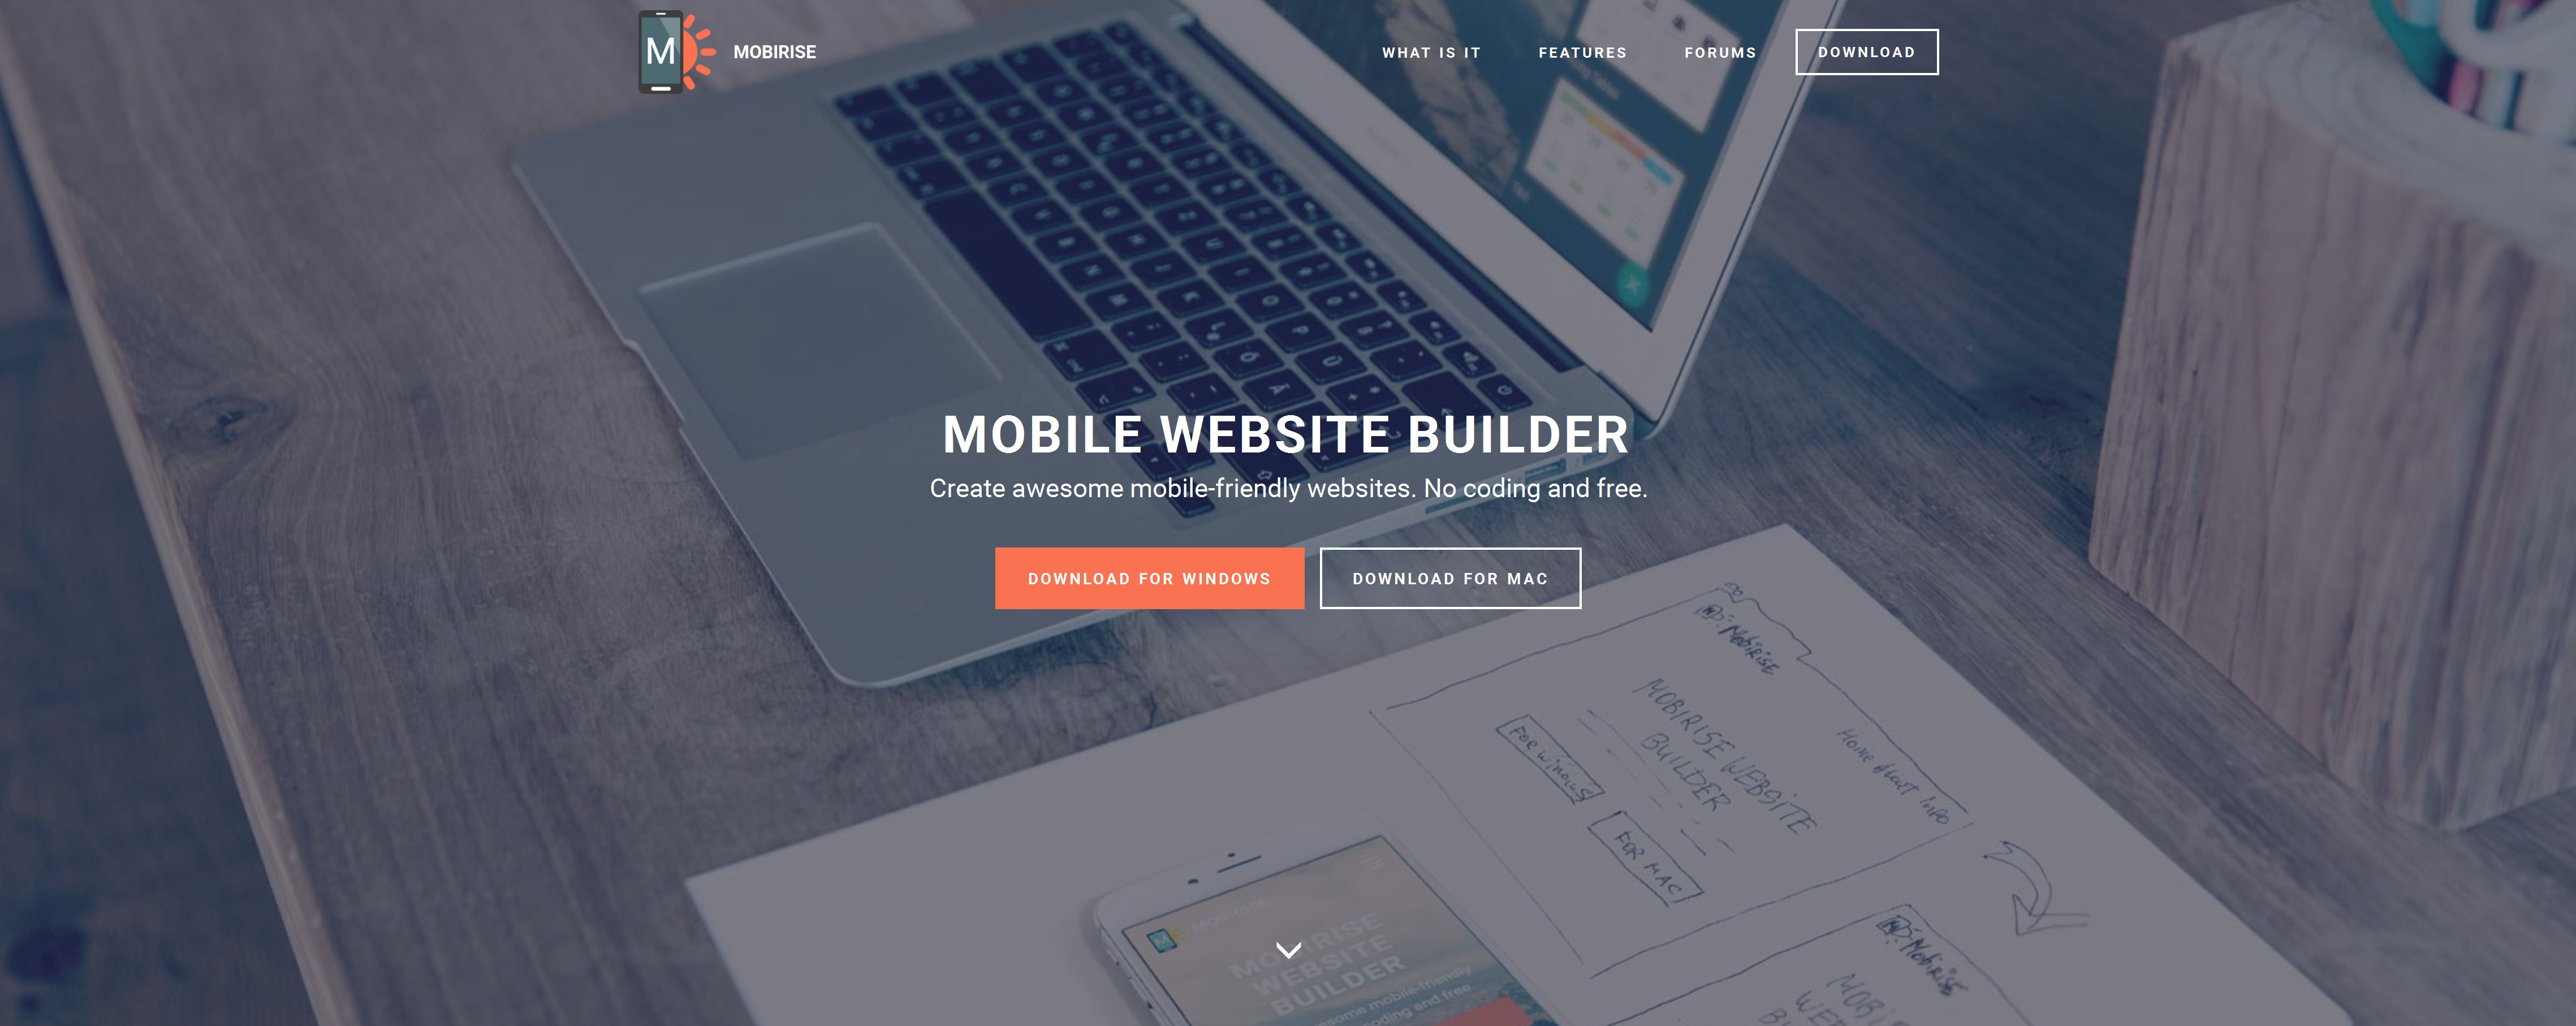 WYSIWYG Mobile Website Creator Review